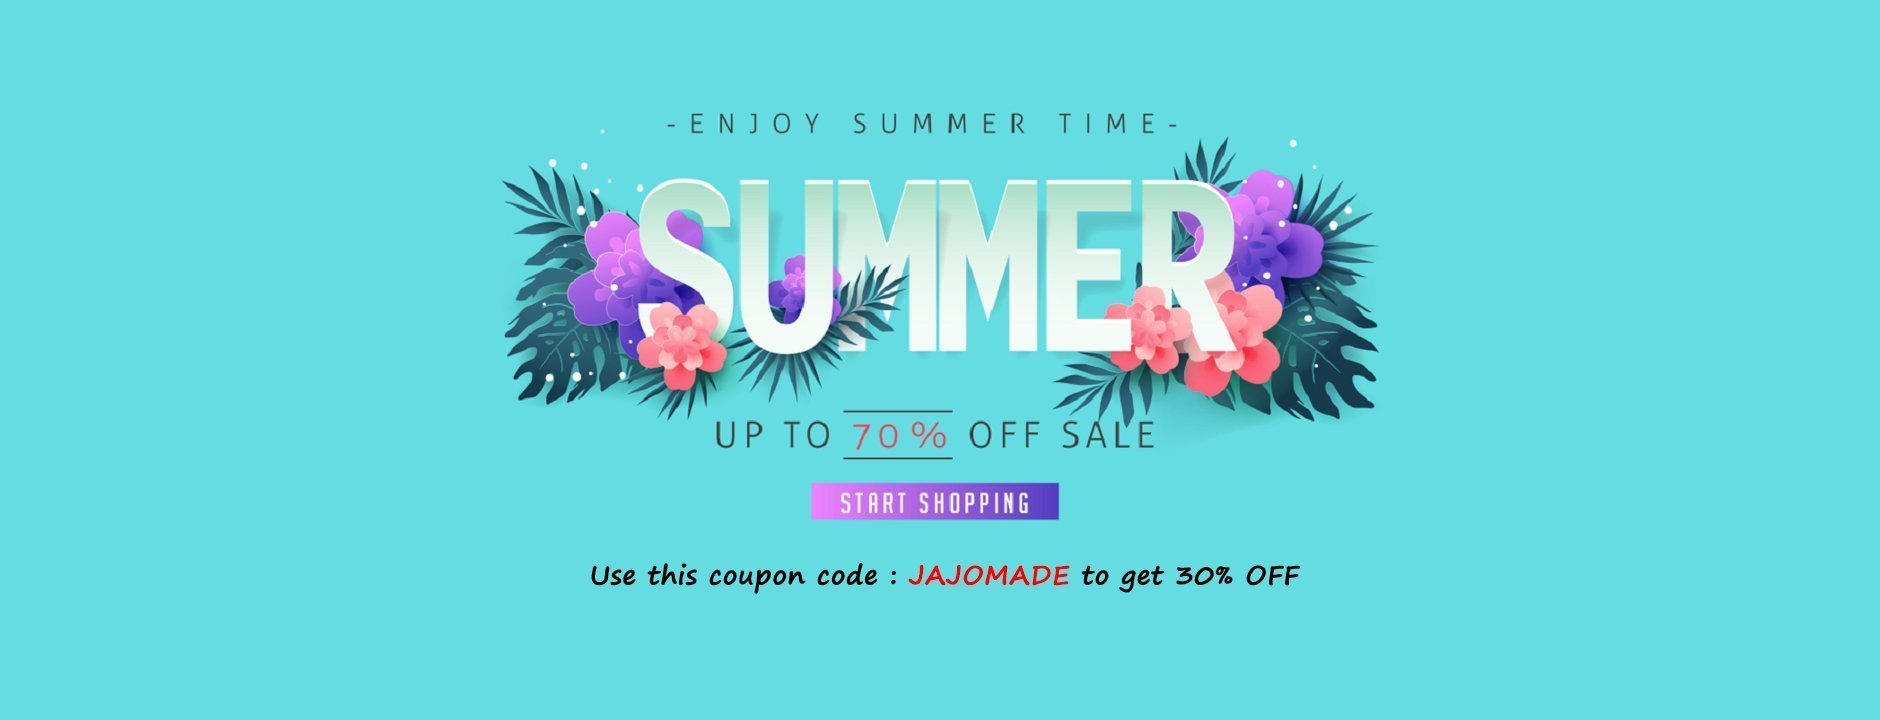 https://jajomade.com/collections/spring-2018